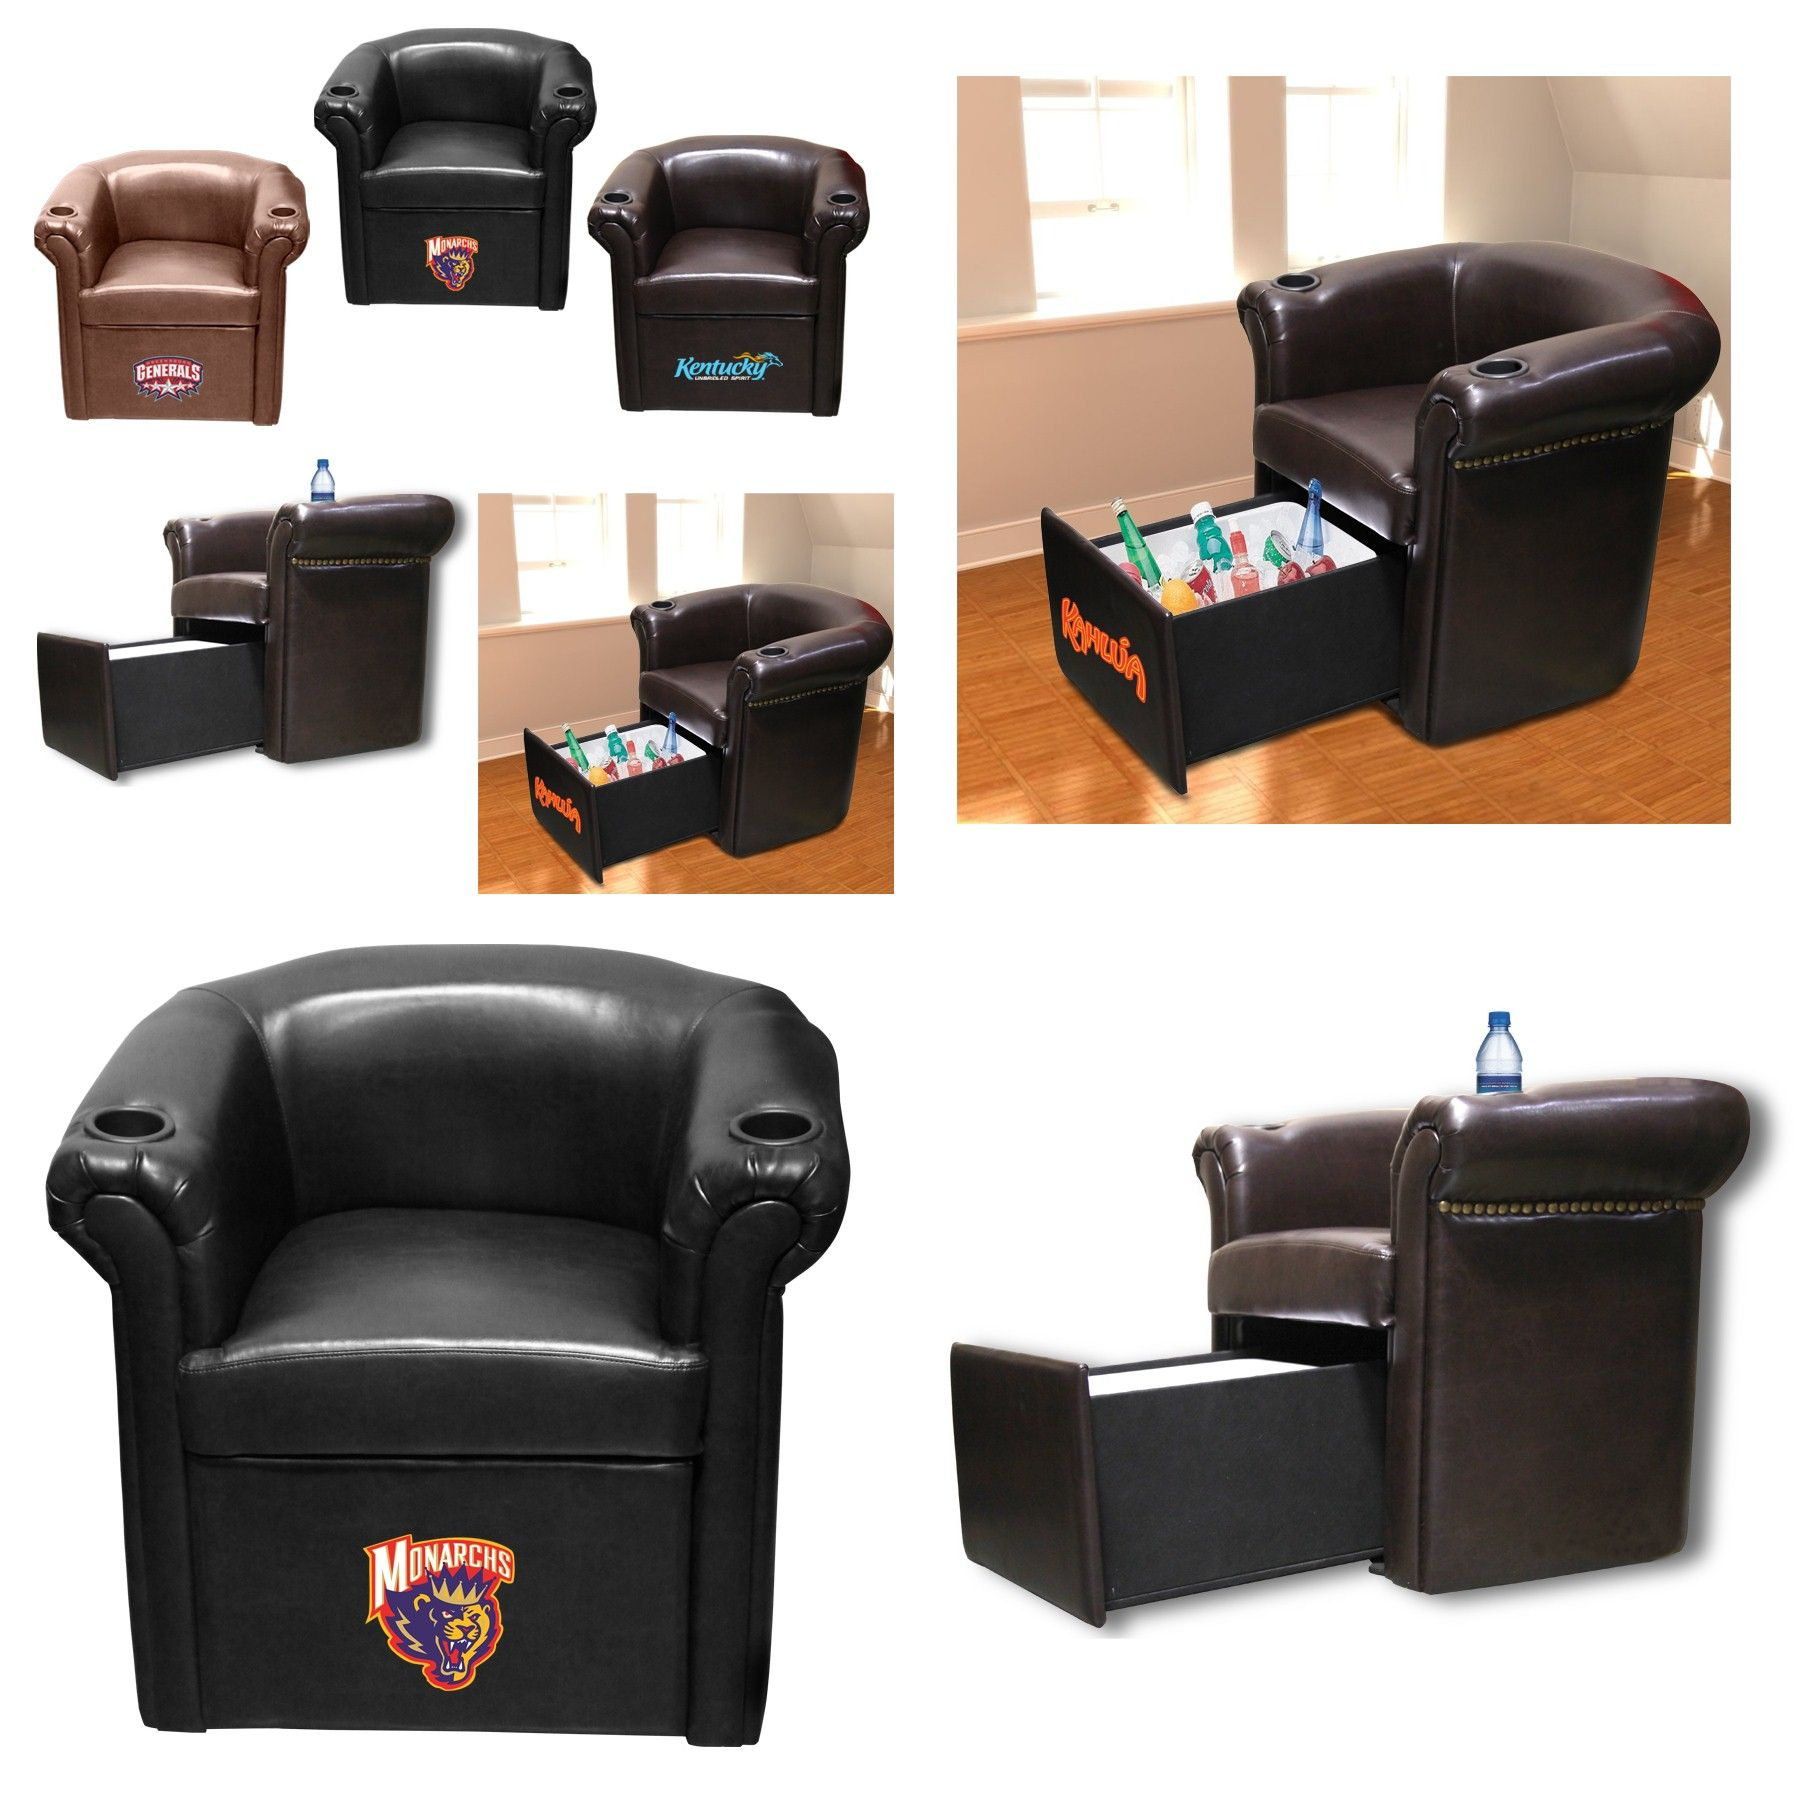 Where To Buy Man Cave Furniture : Cooler chairs man cave approved new products i love